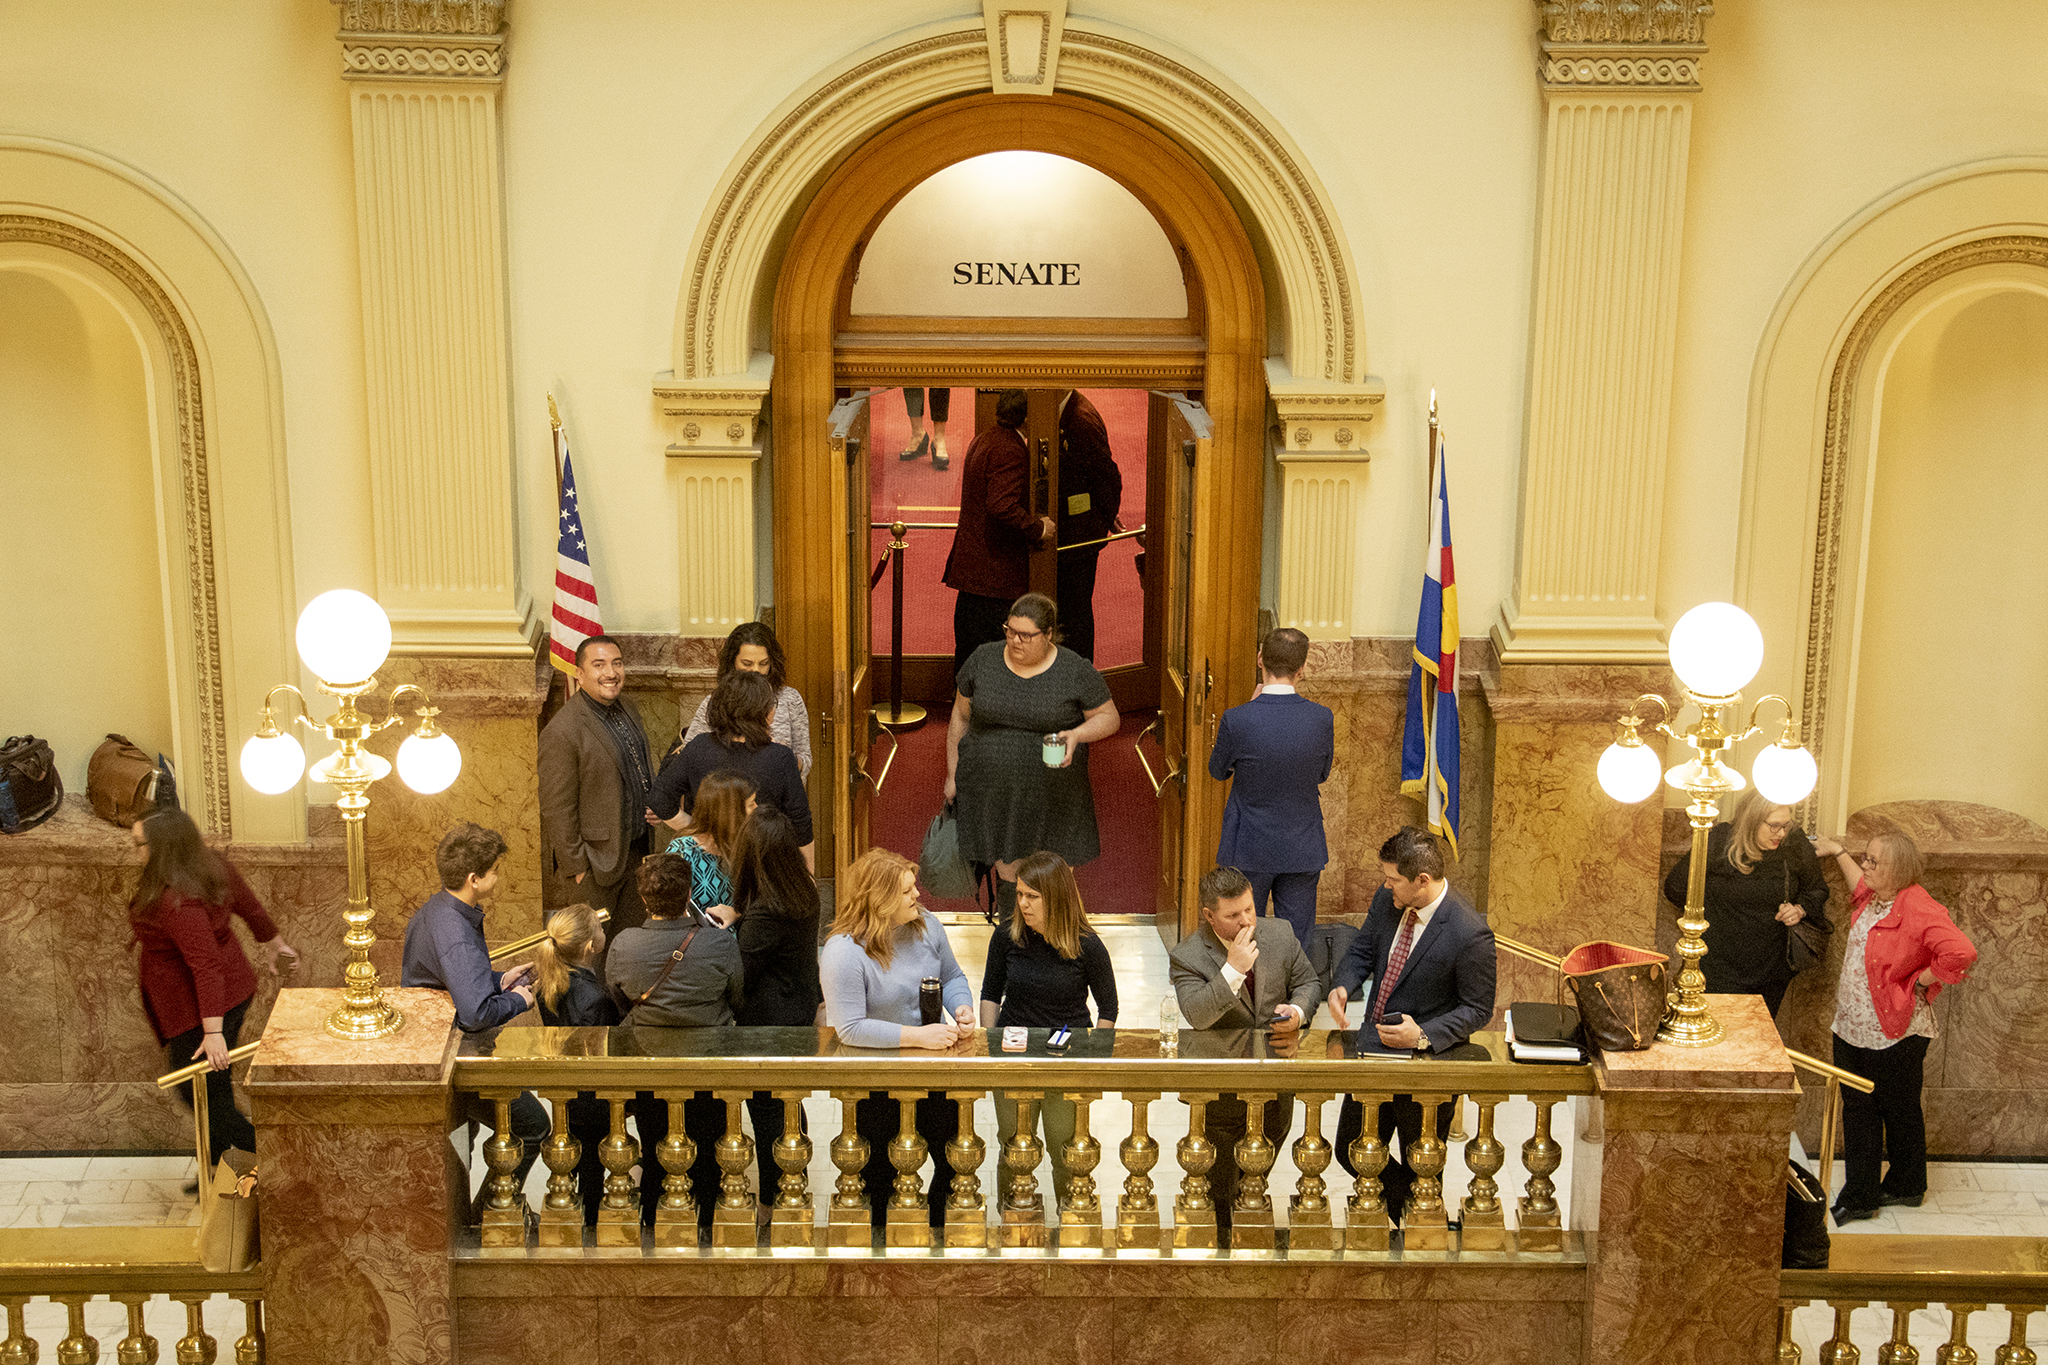 <p>It's a busy day outside the state Senate chambers, April 30, 2019.</p>